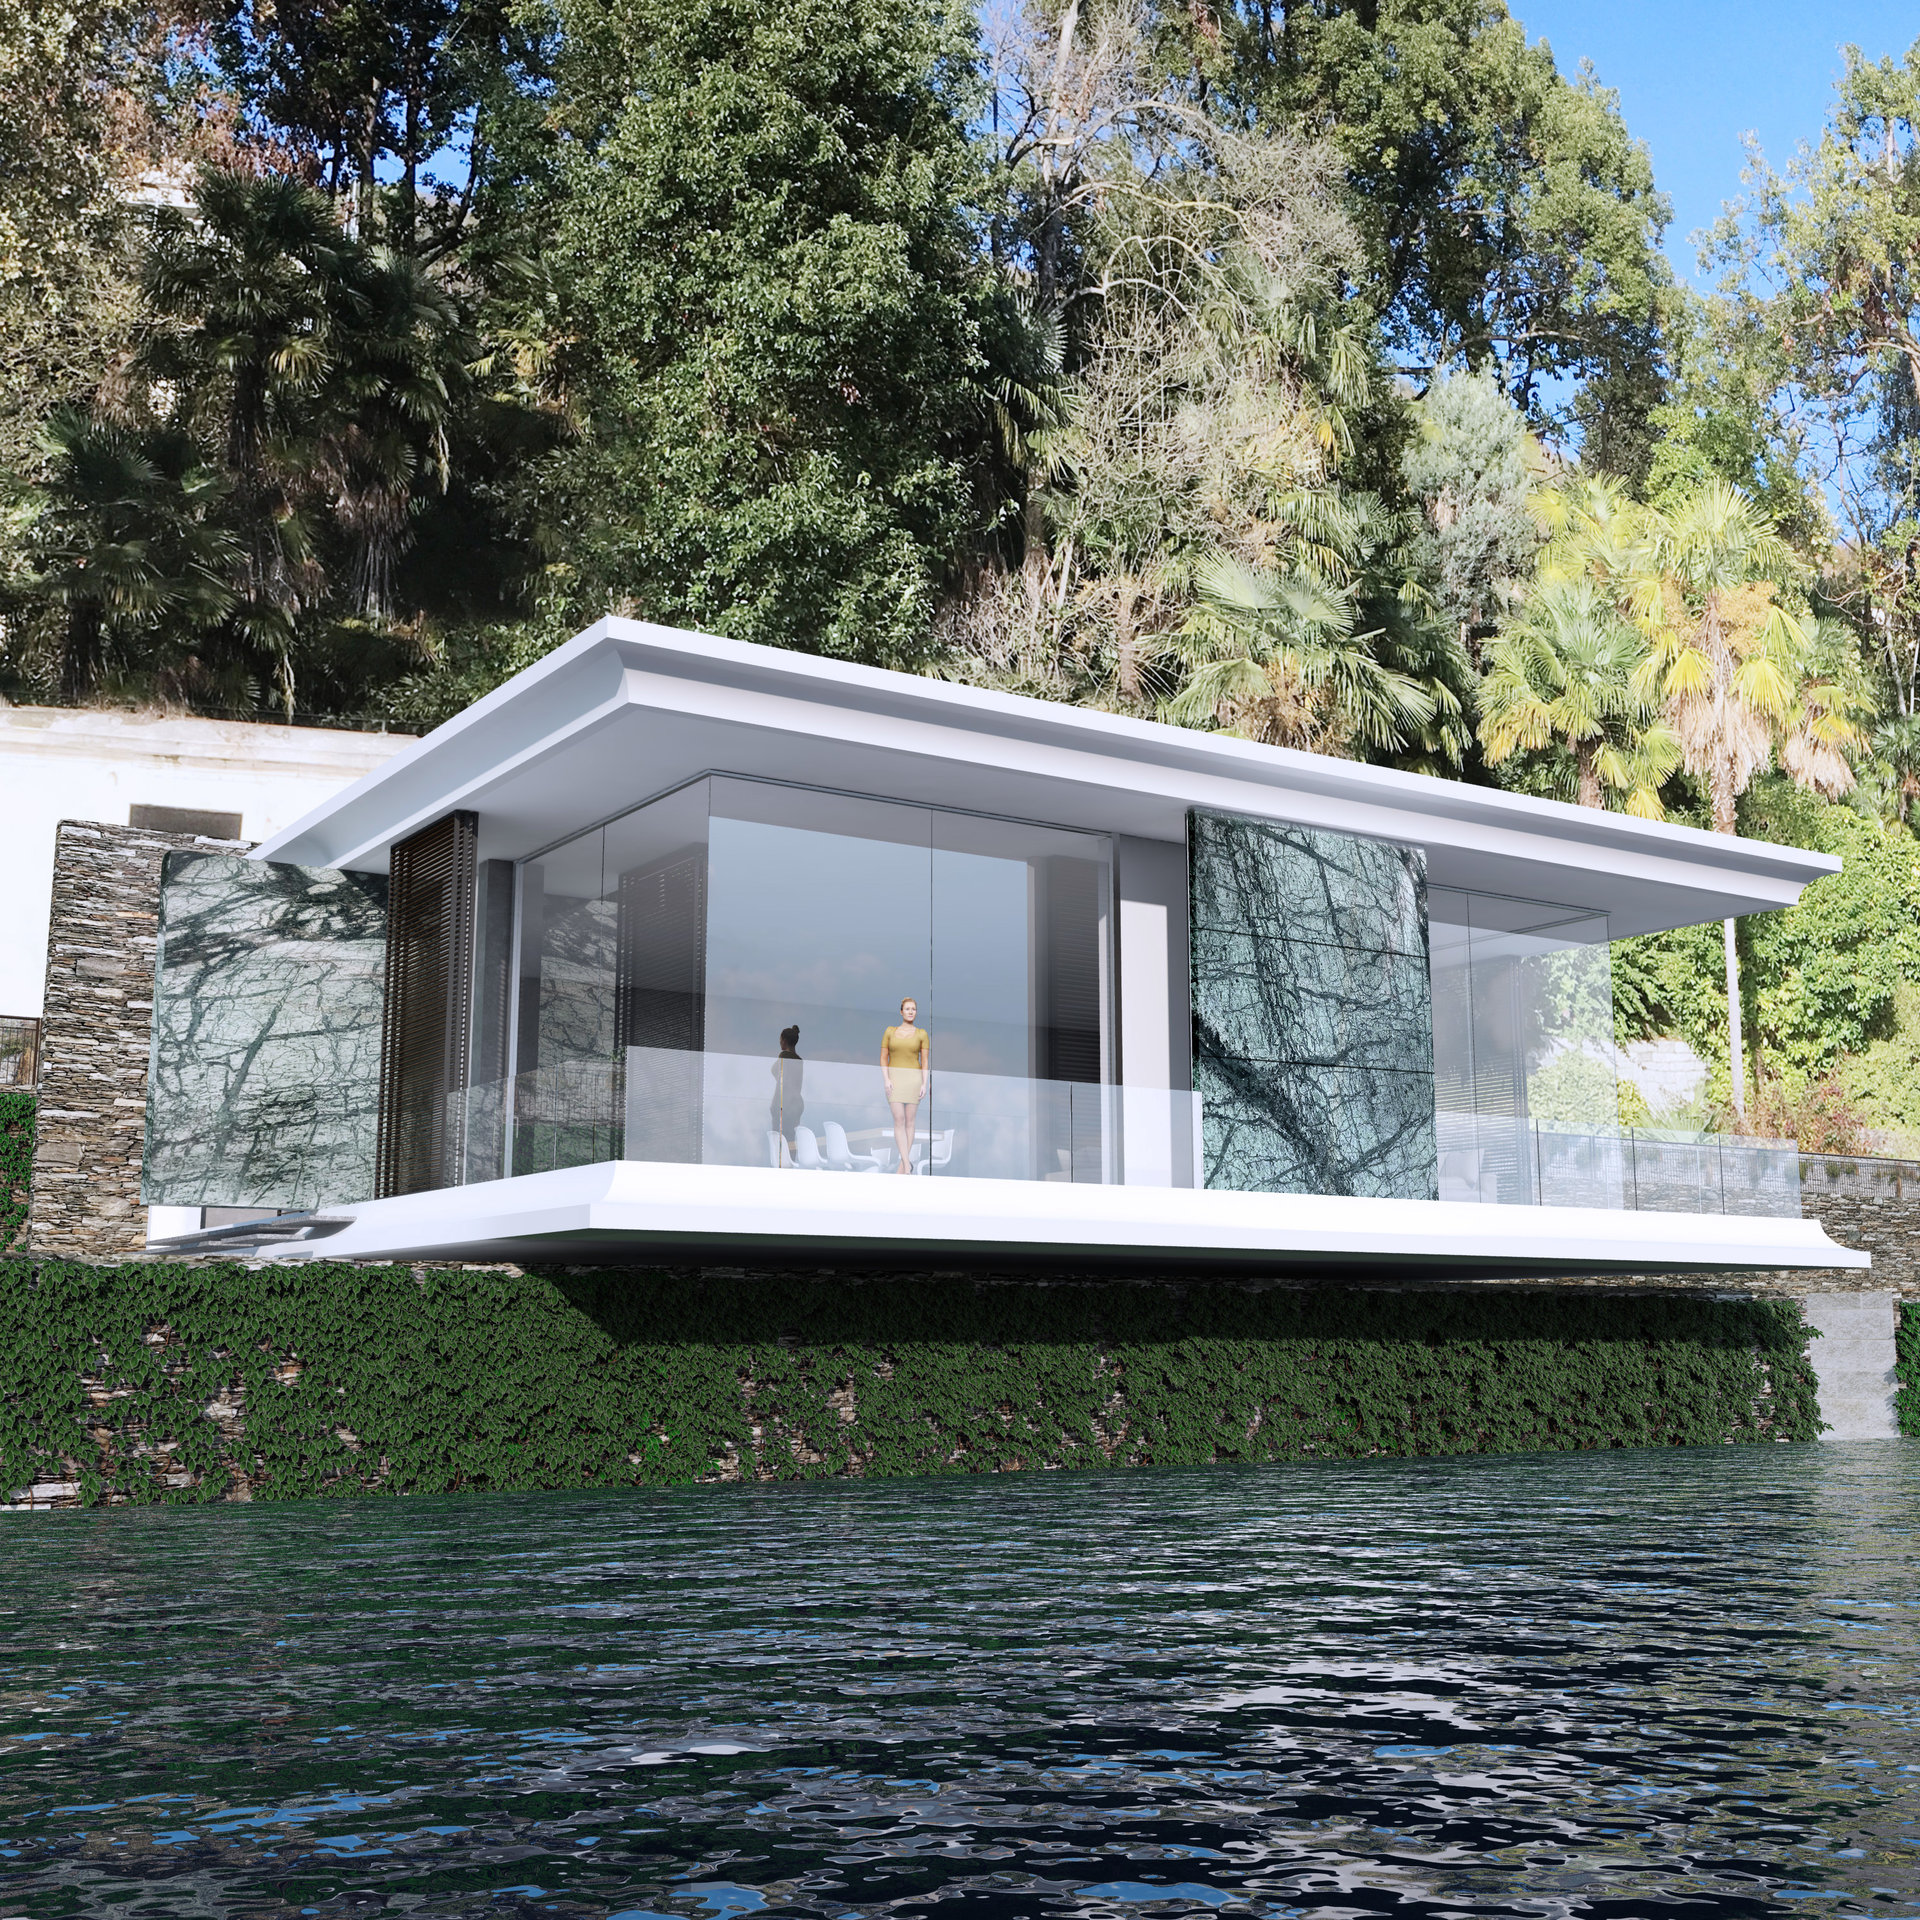 Exclusive Modern Villa for Sale in Verbania